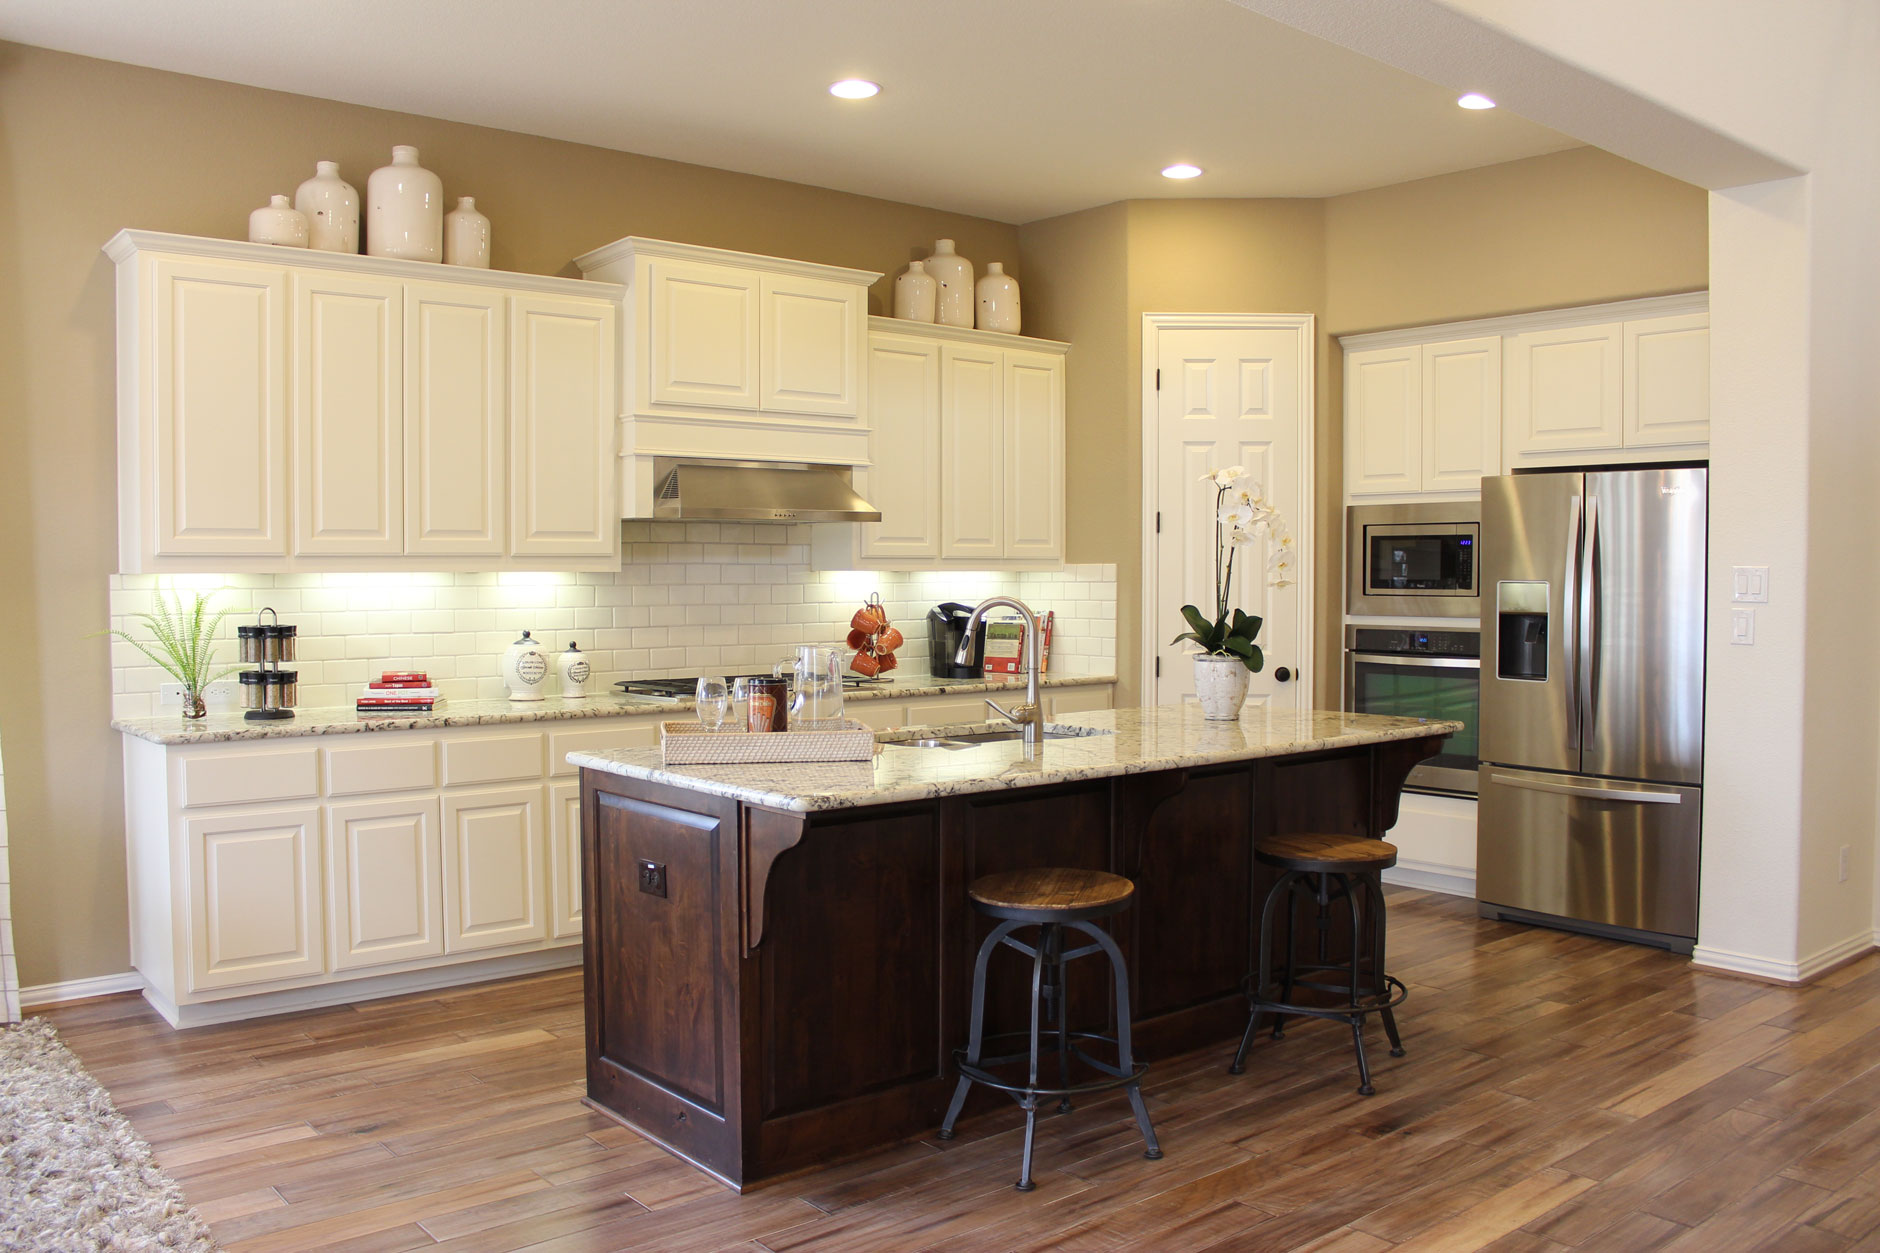 ... Burrows Cabinets Kitchen In Knotty Alder With Verona Finish And  Appliance End Panels ...